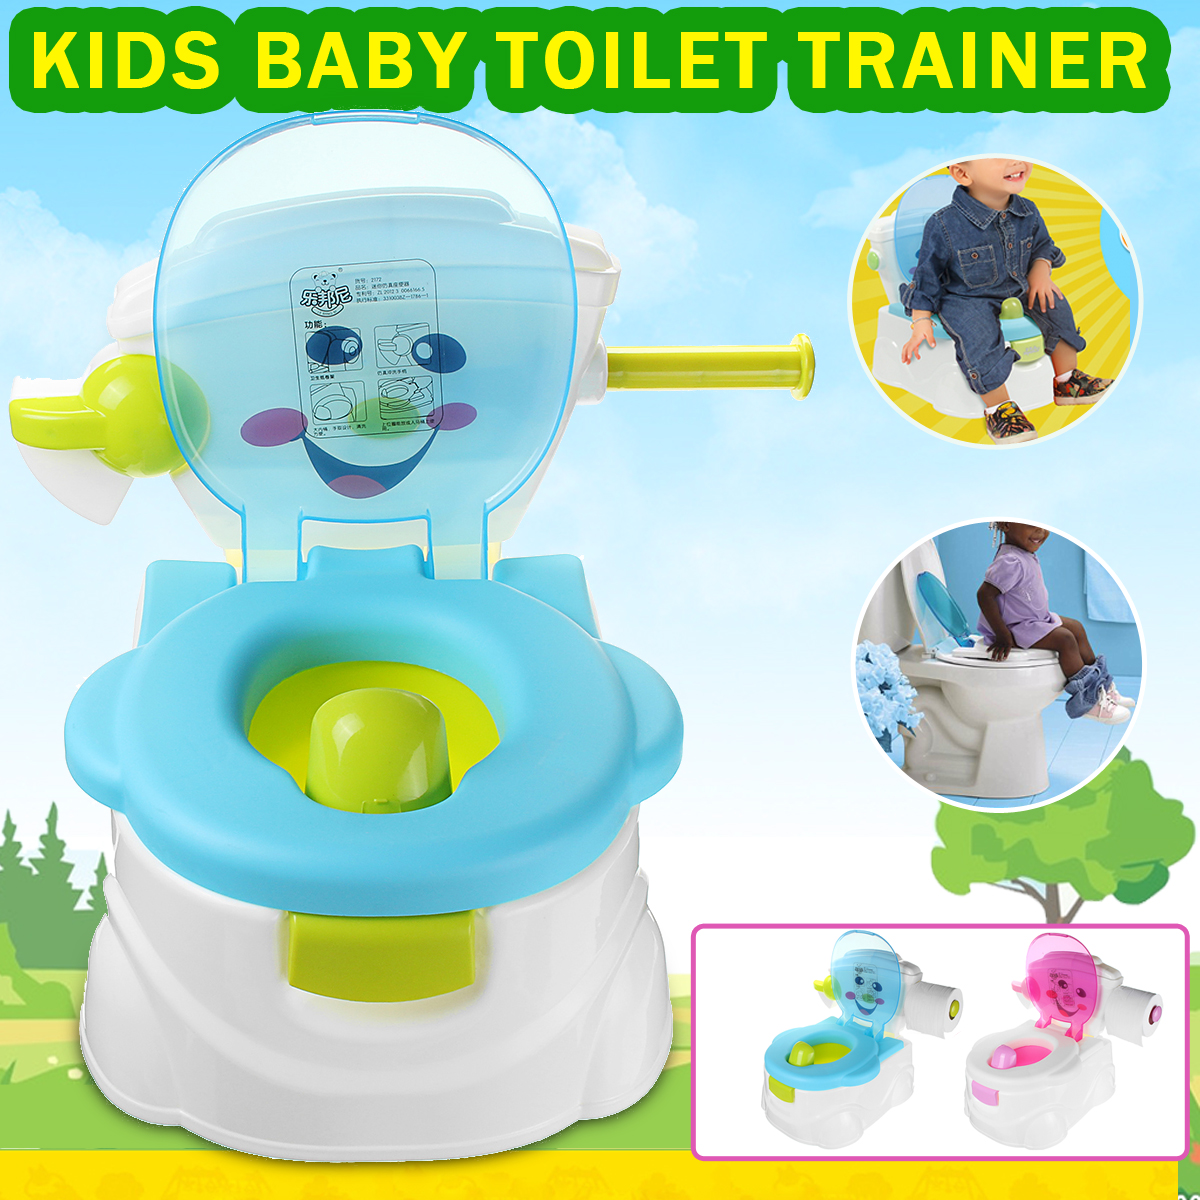 1 x Baby Toilet. More Detailed Photos: 2 In1 Portable Music Kids Baby Toilet Trainer Child Toddler Potties Training Seat Fun Chair